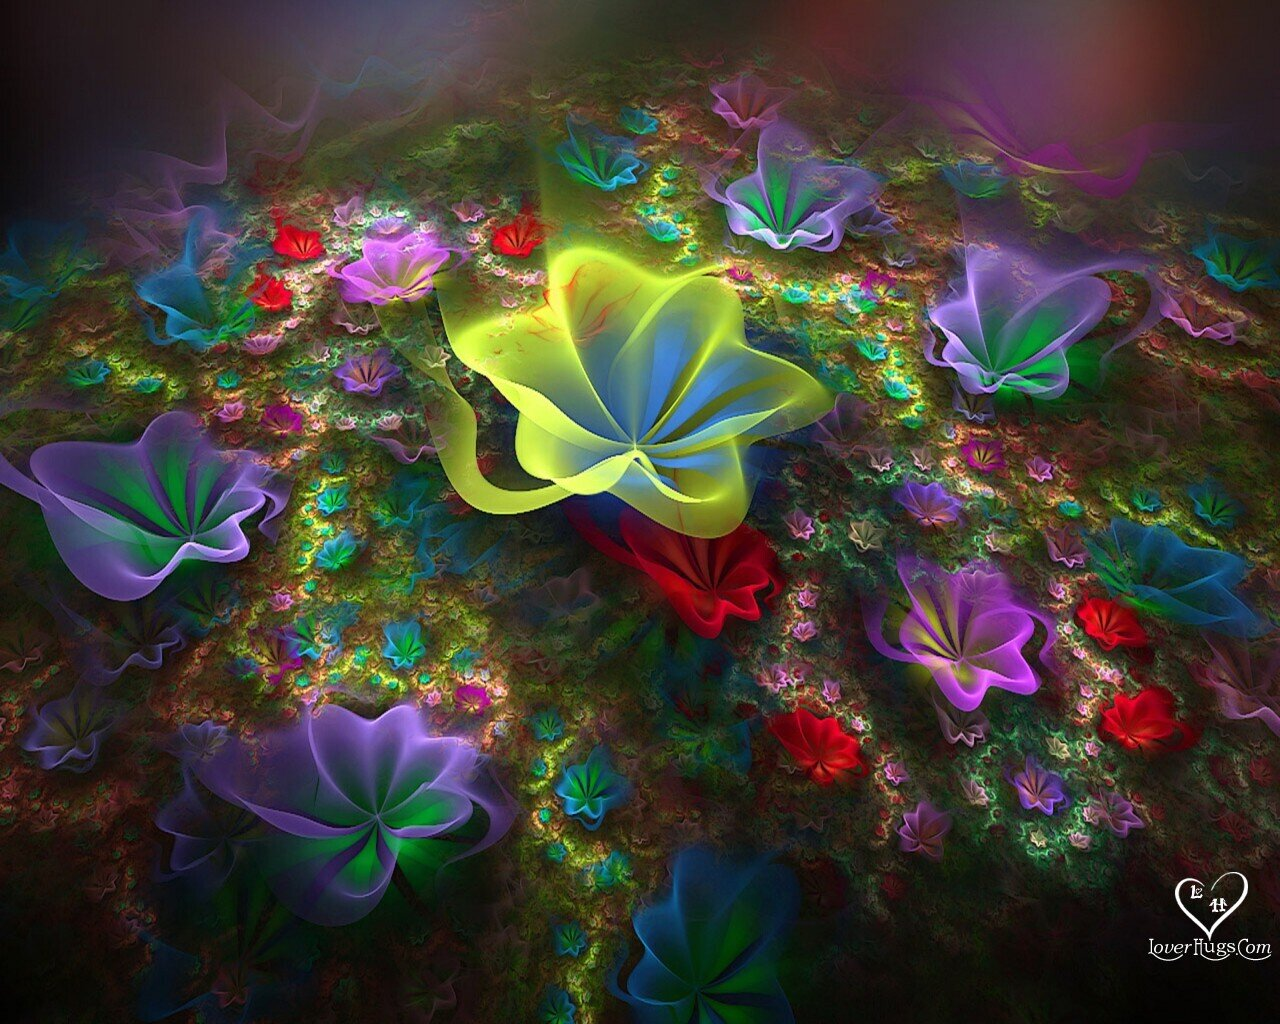 Amaging World: 3D Flowers Wallpapers